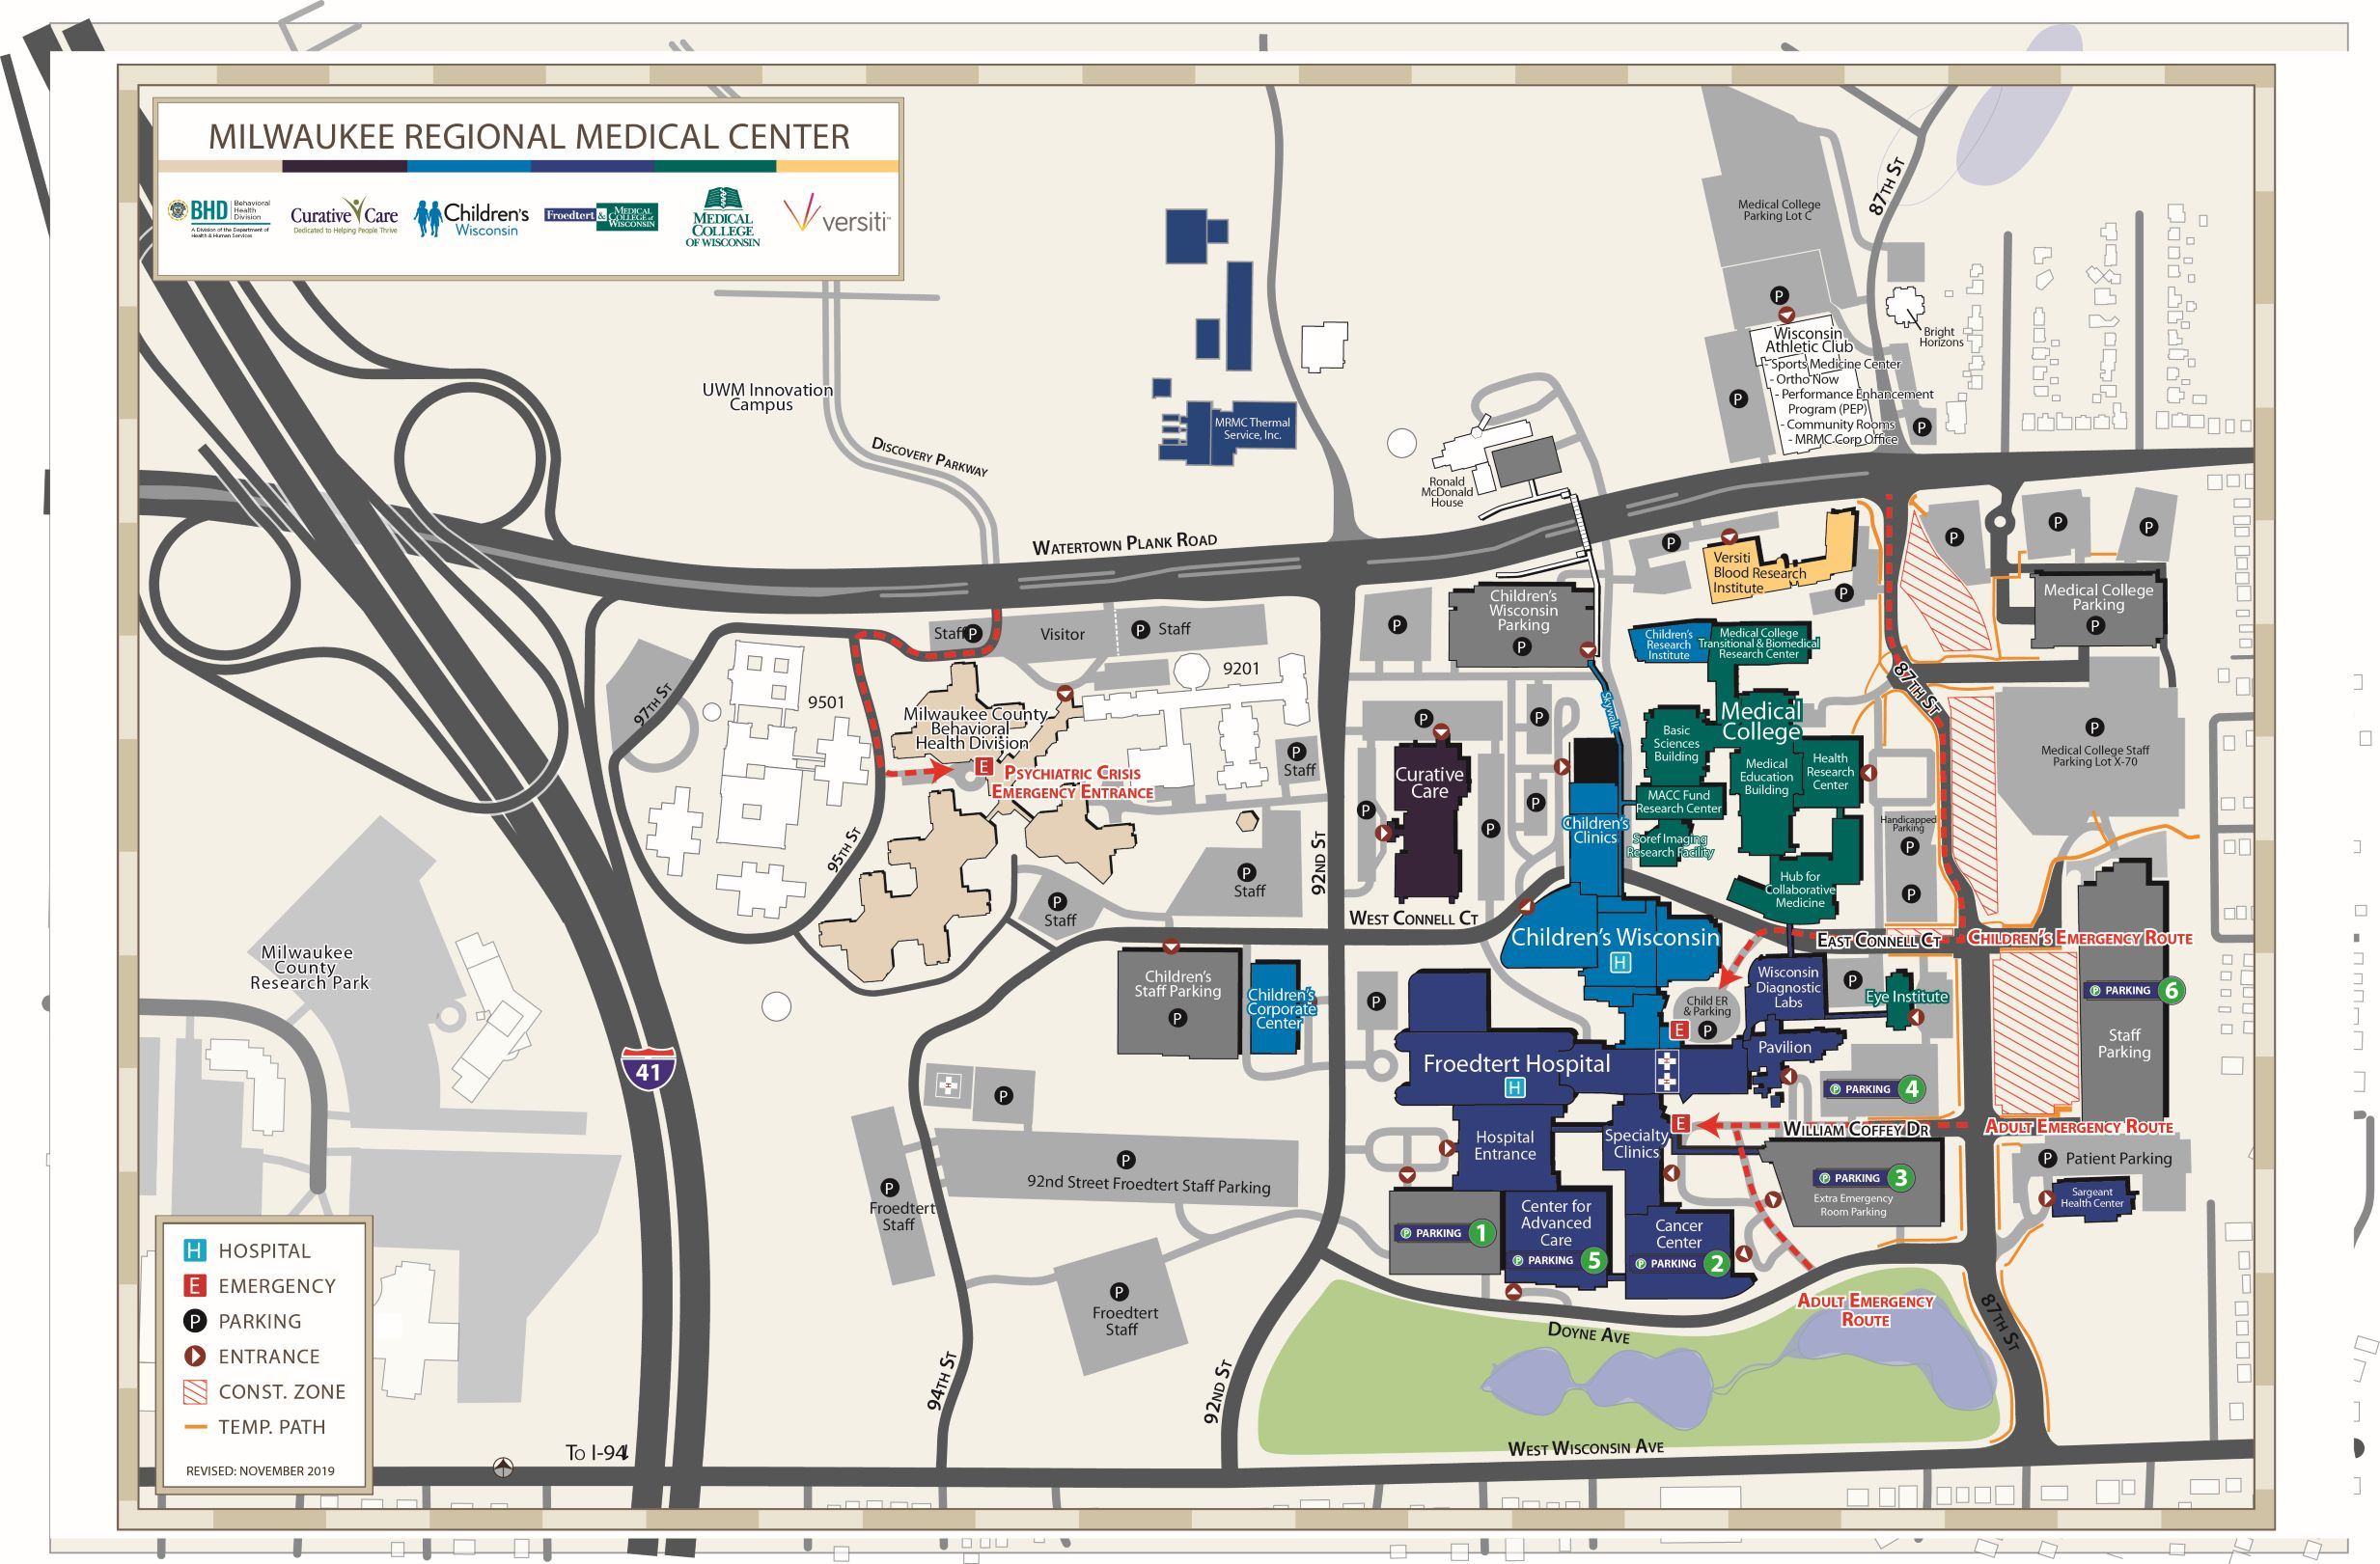 CS5-MRMC-Campus-Location-Map_010320-HI-RES-JPG-RED.jpg